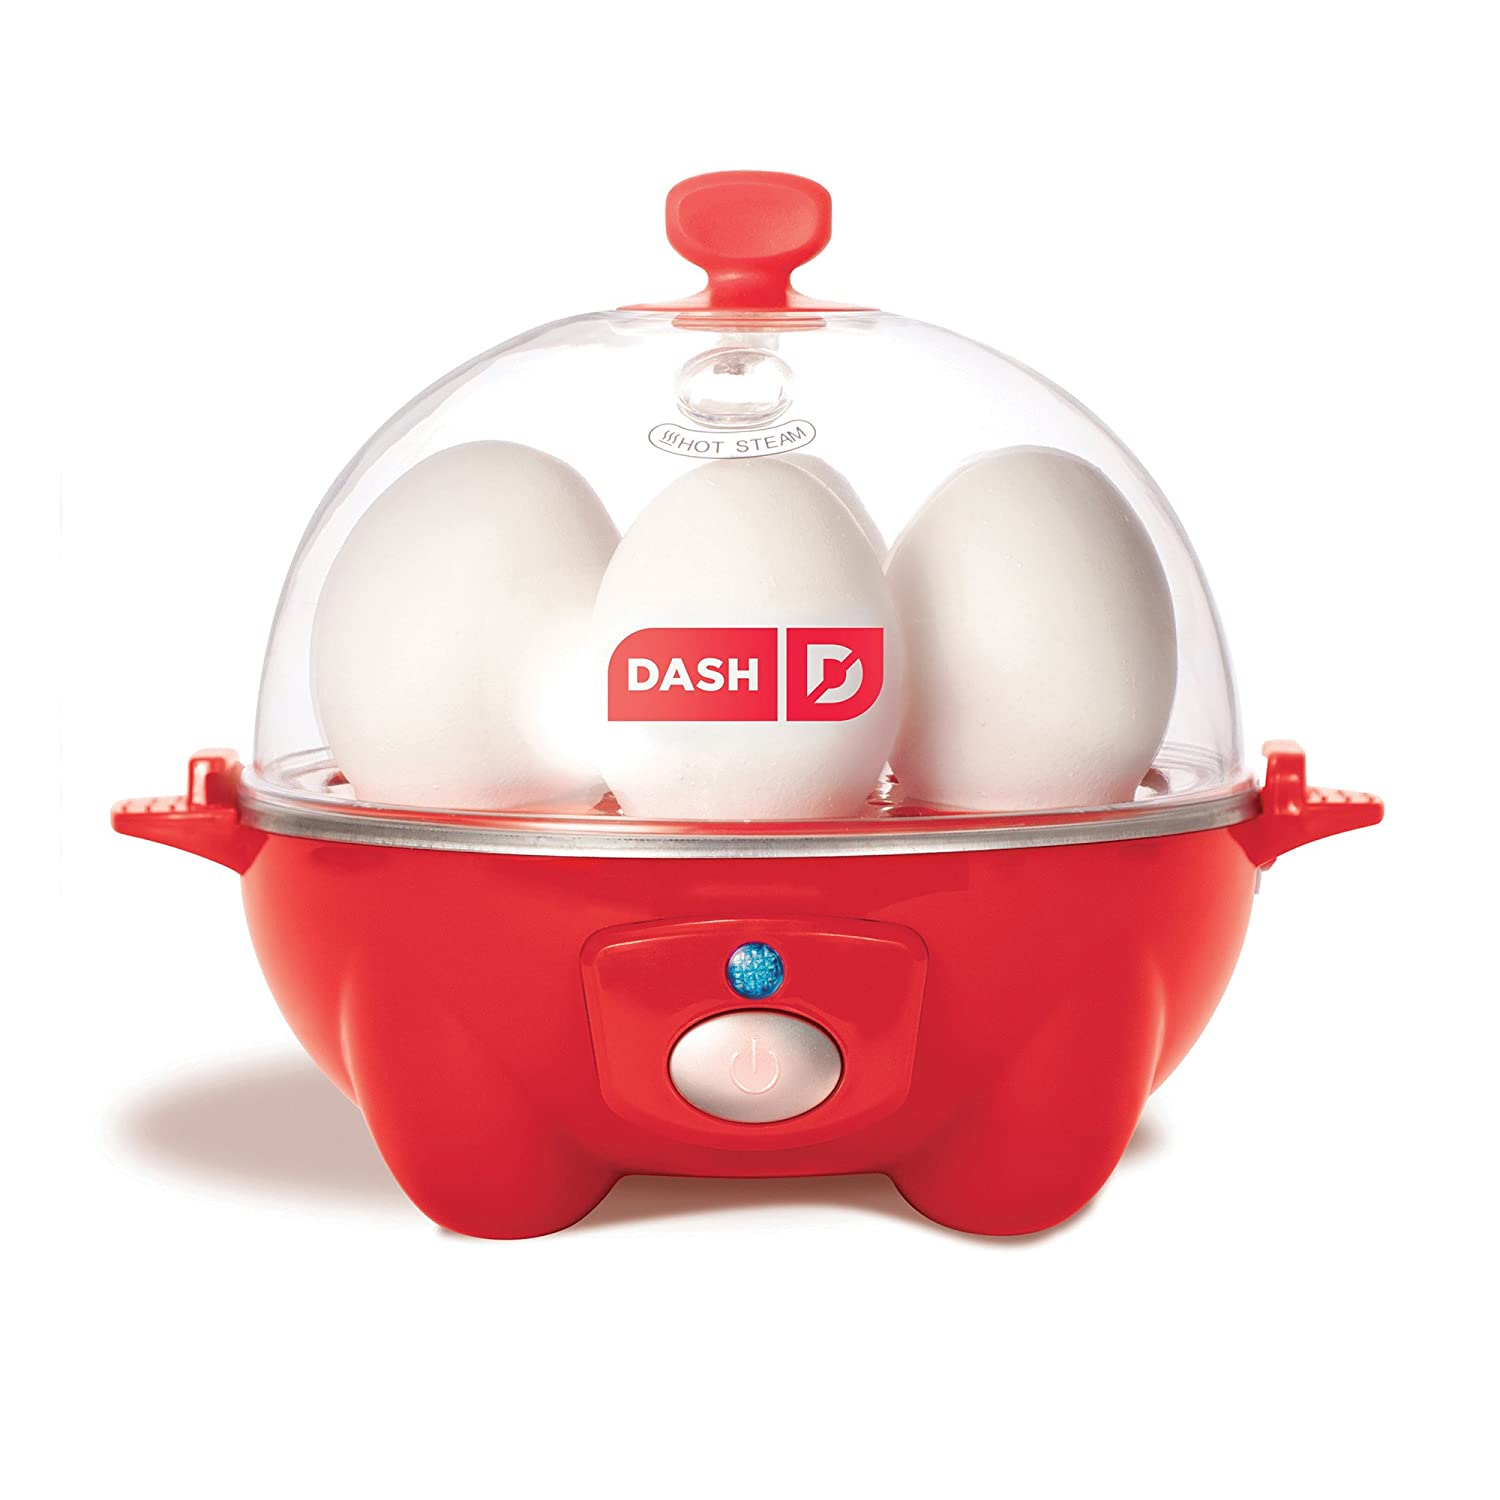 Dash Rapid Egg Cooker: 6 Egg Capacity Electric Egg Cooker for Hard Boiled Eggs, Poached Eggs, Scrambled Eggs, or Omelets with Auto Shut Off Feature - Black DEC005BK